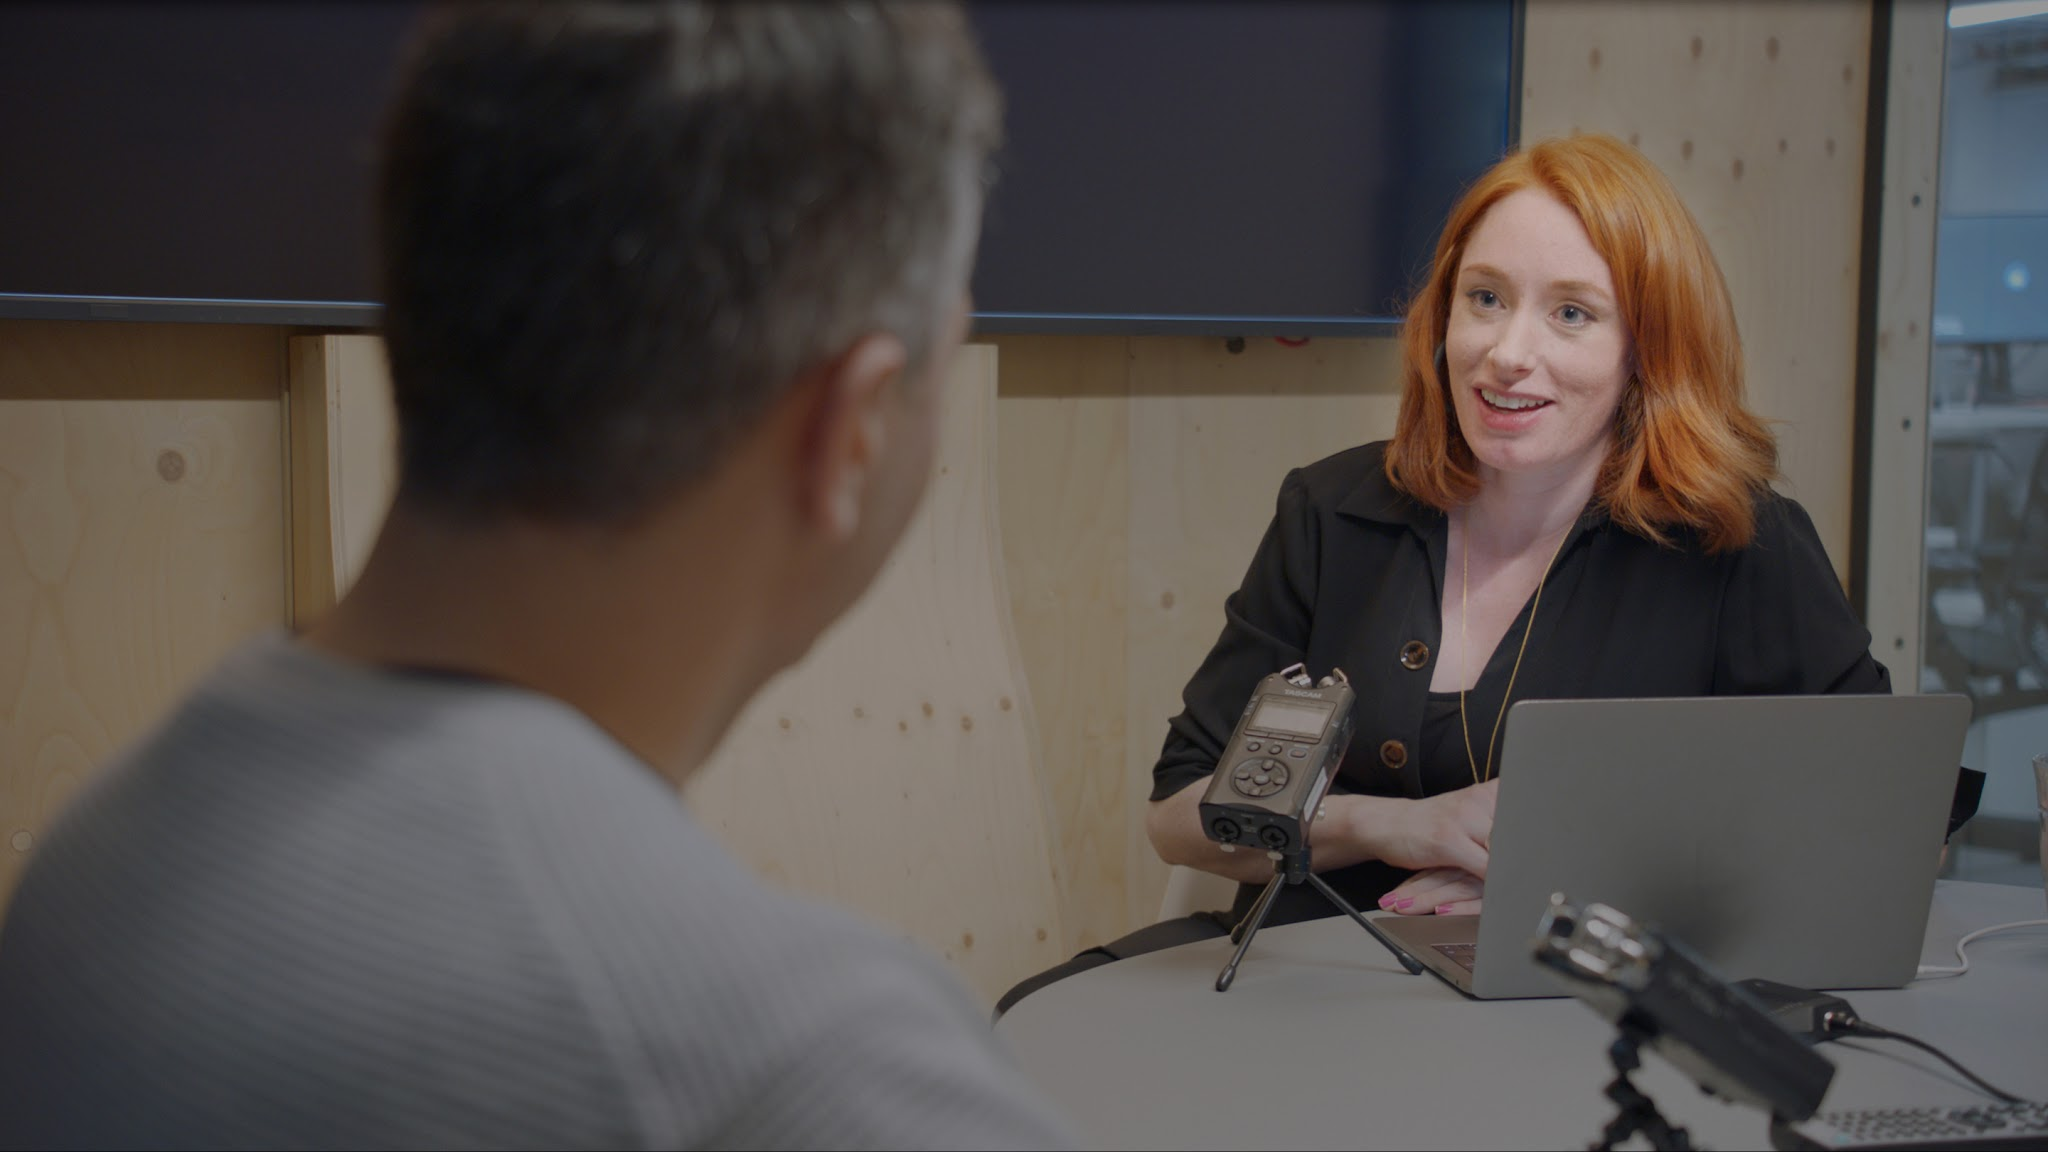 Dr Hannah Fry, the podcast presenter, pictured at an interview